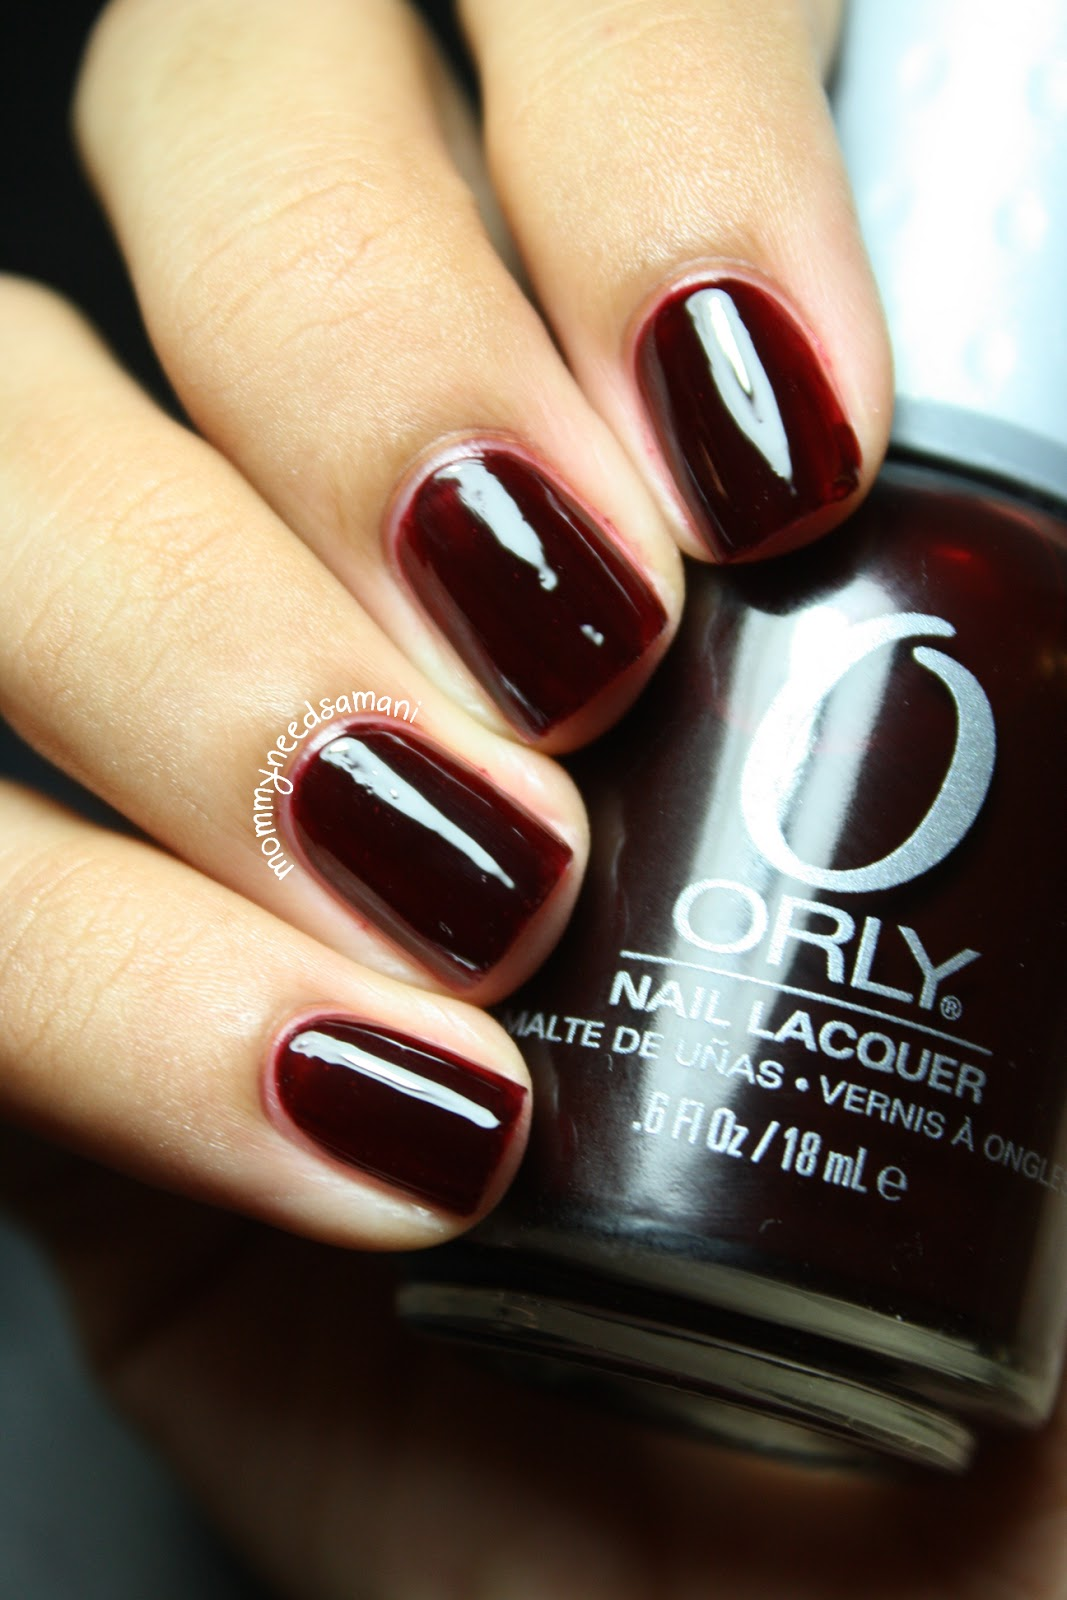 Mommy needs a manicure stat.: Amazing Ross find: Orly Polish